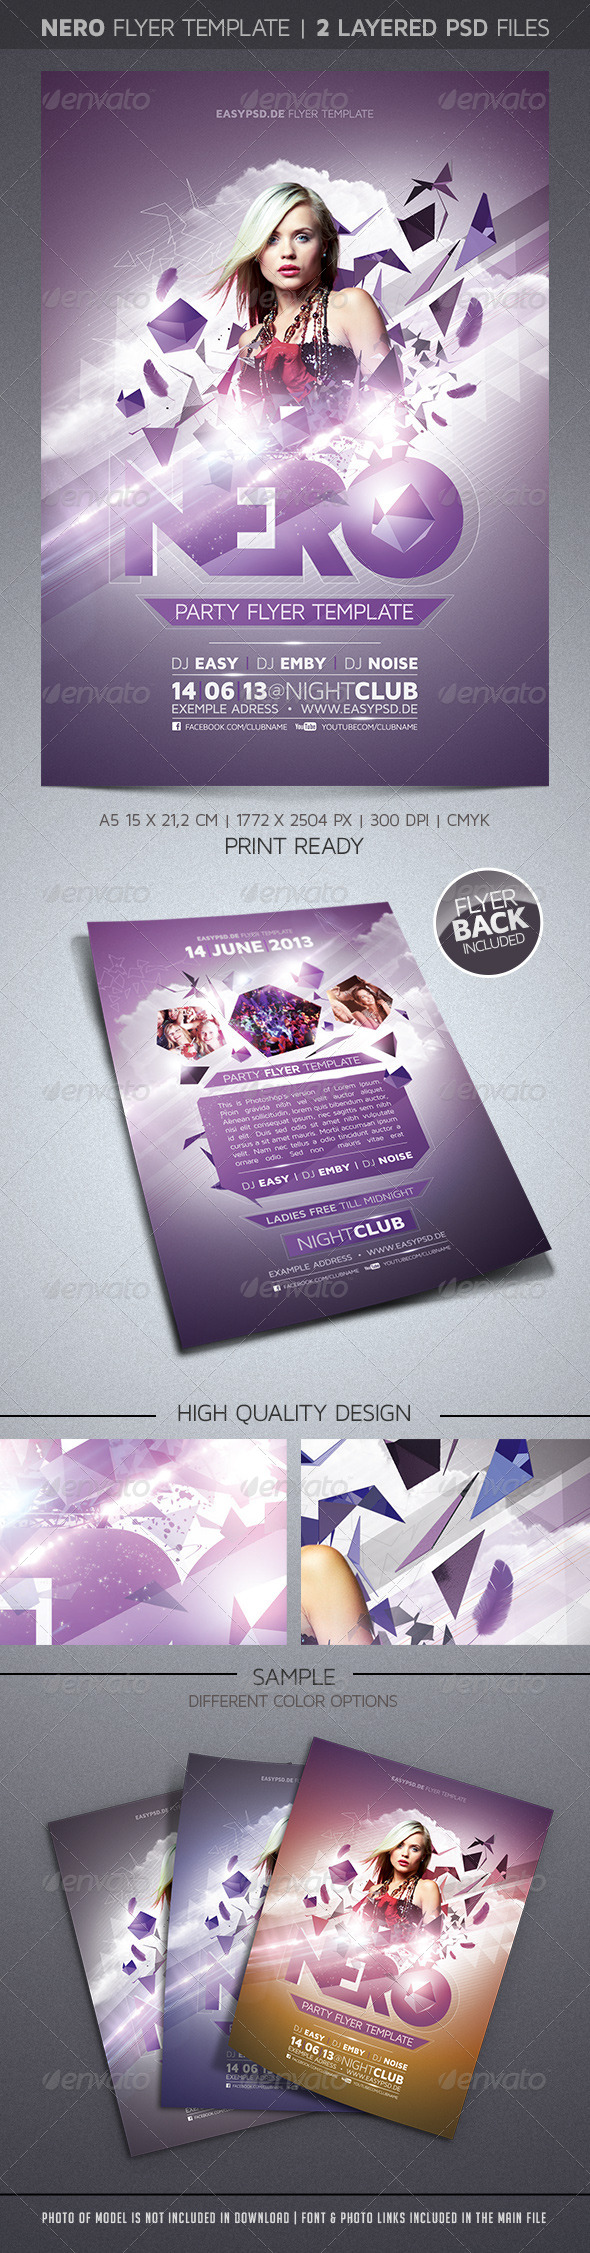 GraphicRiver Nero Flyer Template 4216586